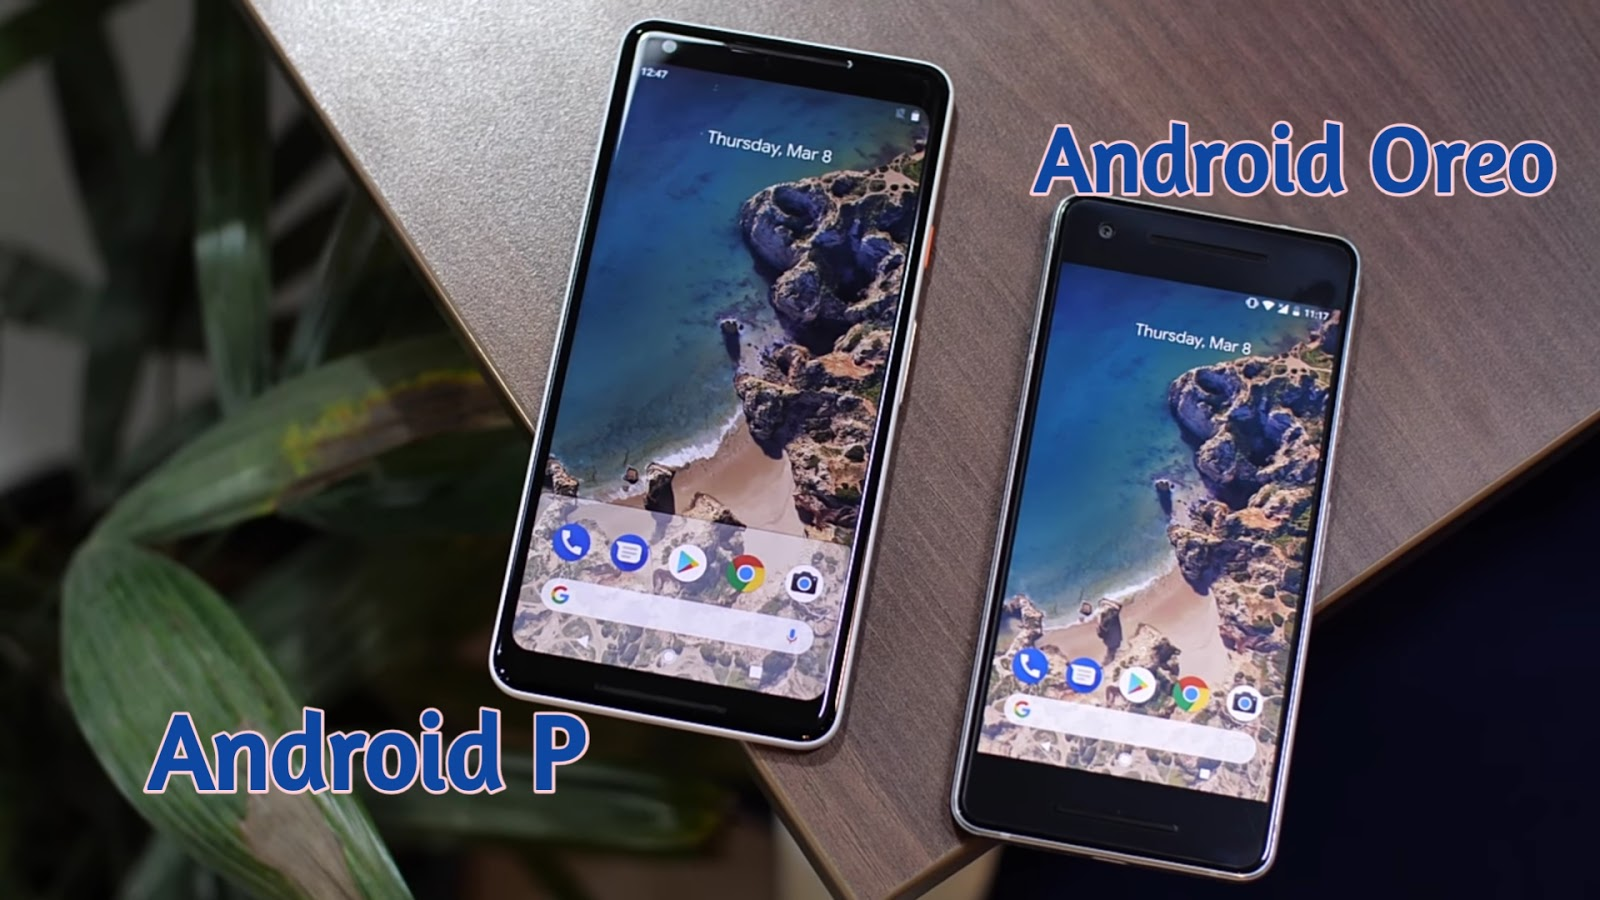 Android P side by side with android oreo